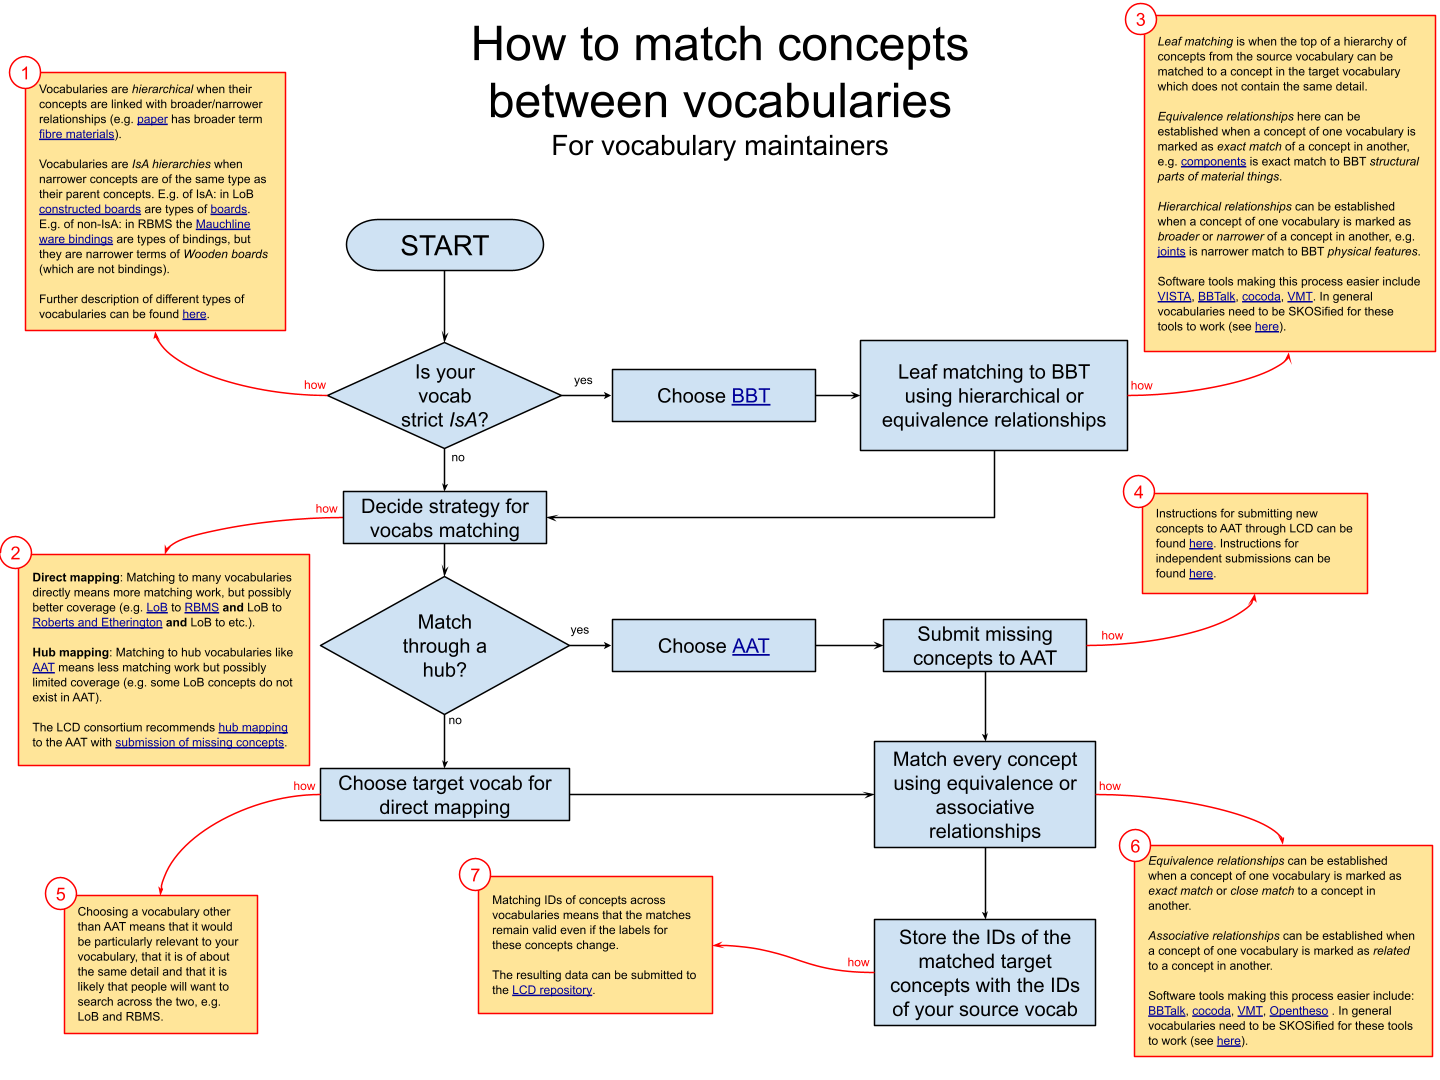 Flowchart explaining how to decide on the strategy for aligning two vocabularies